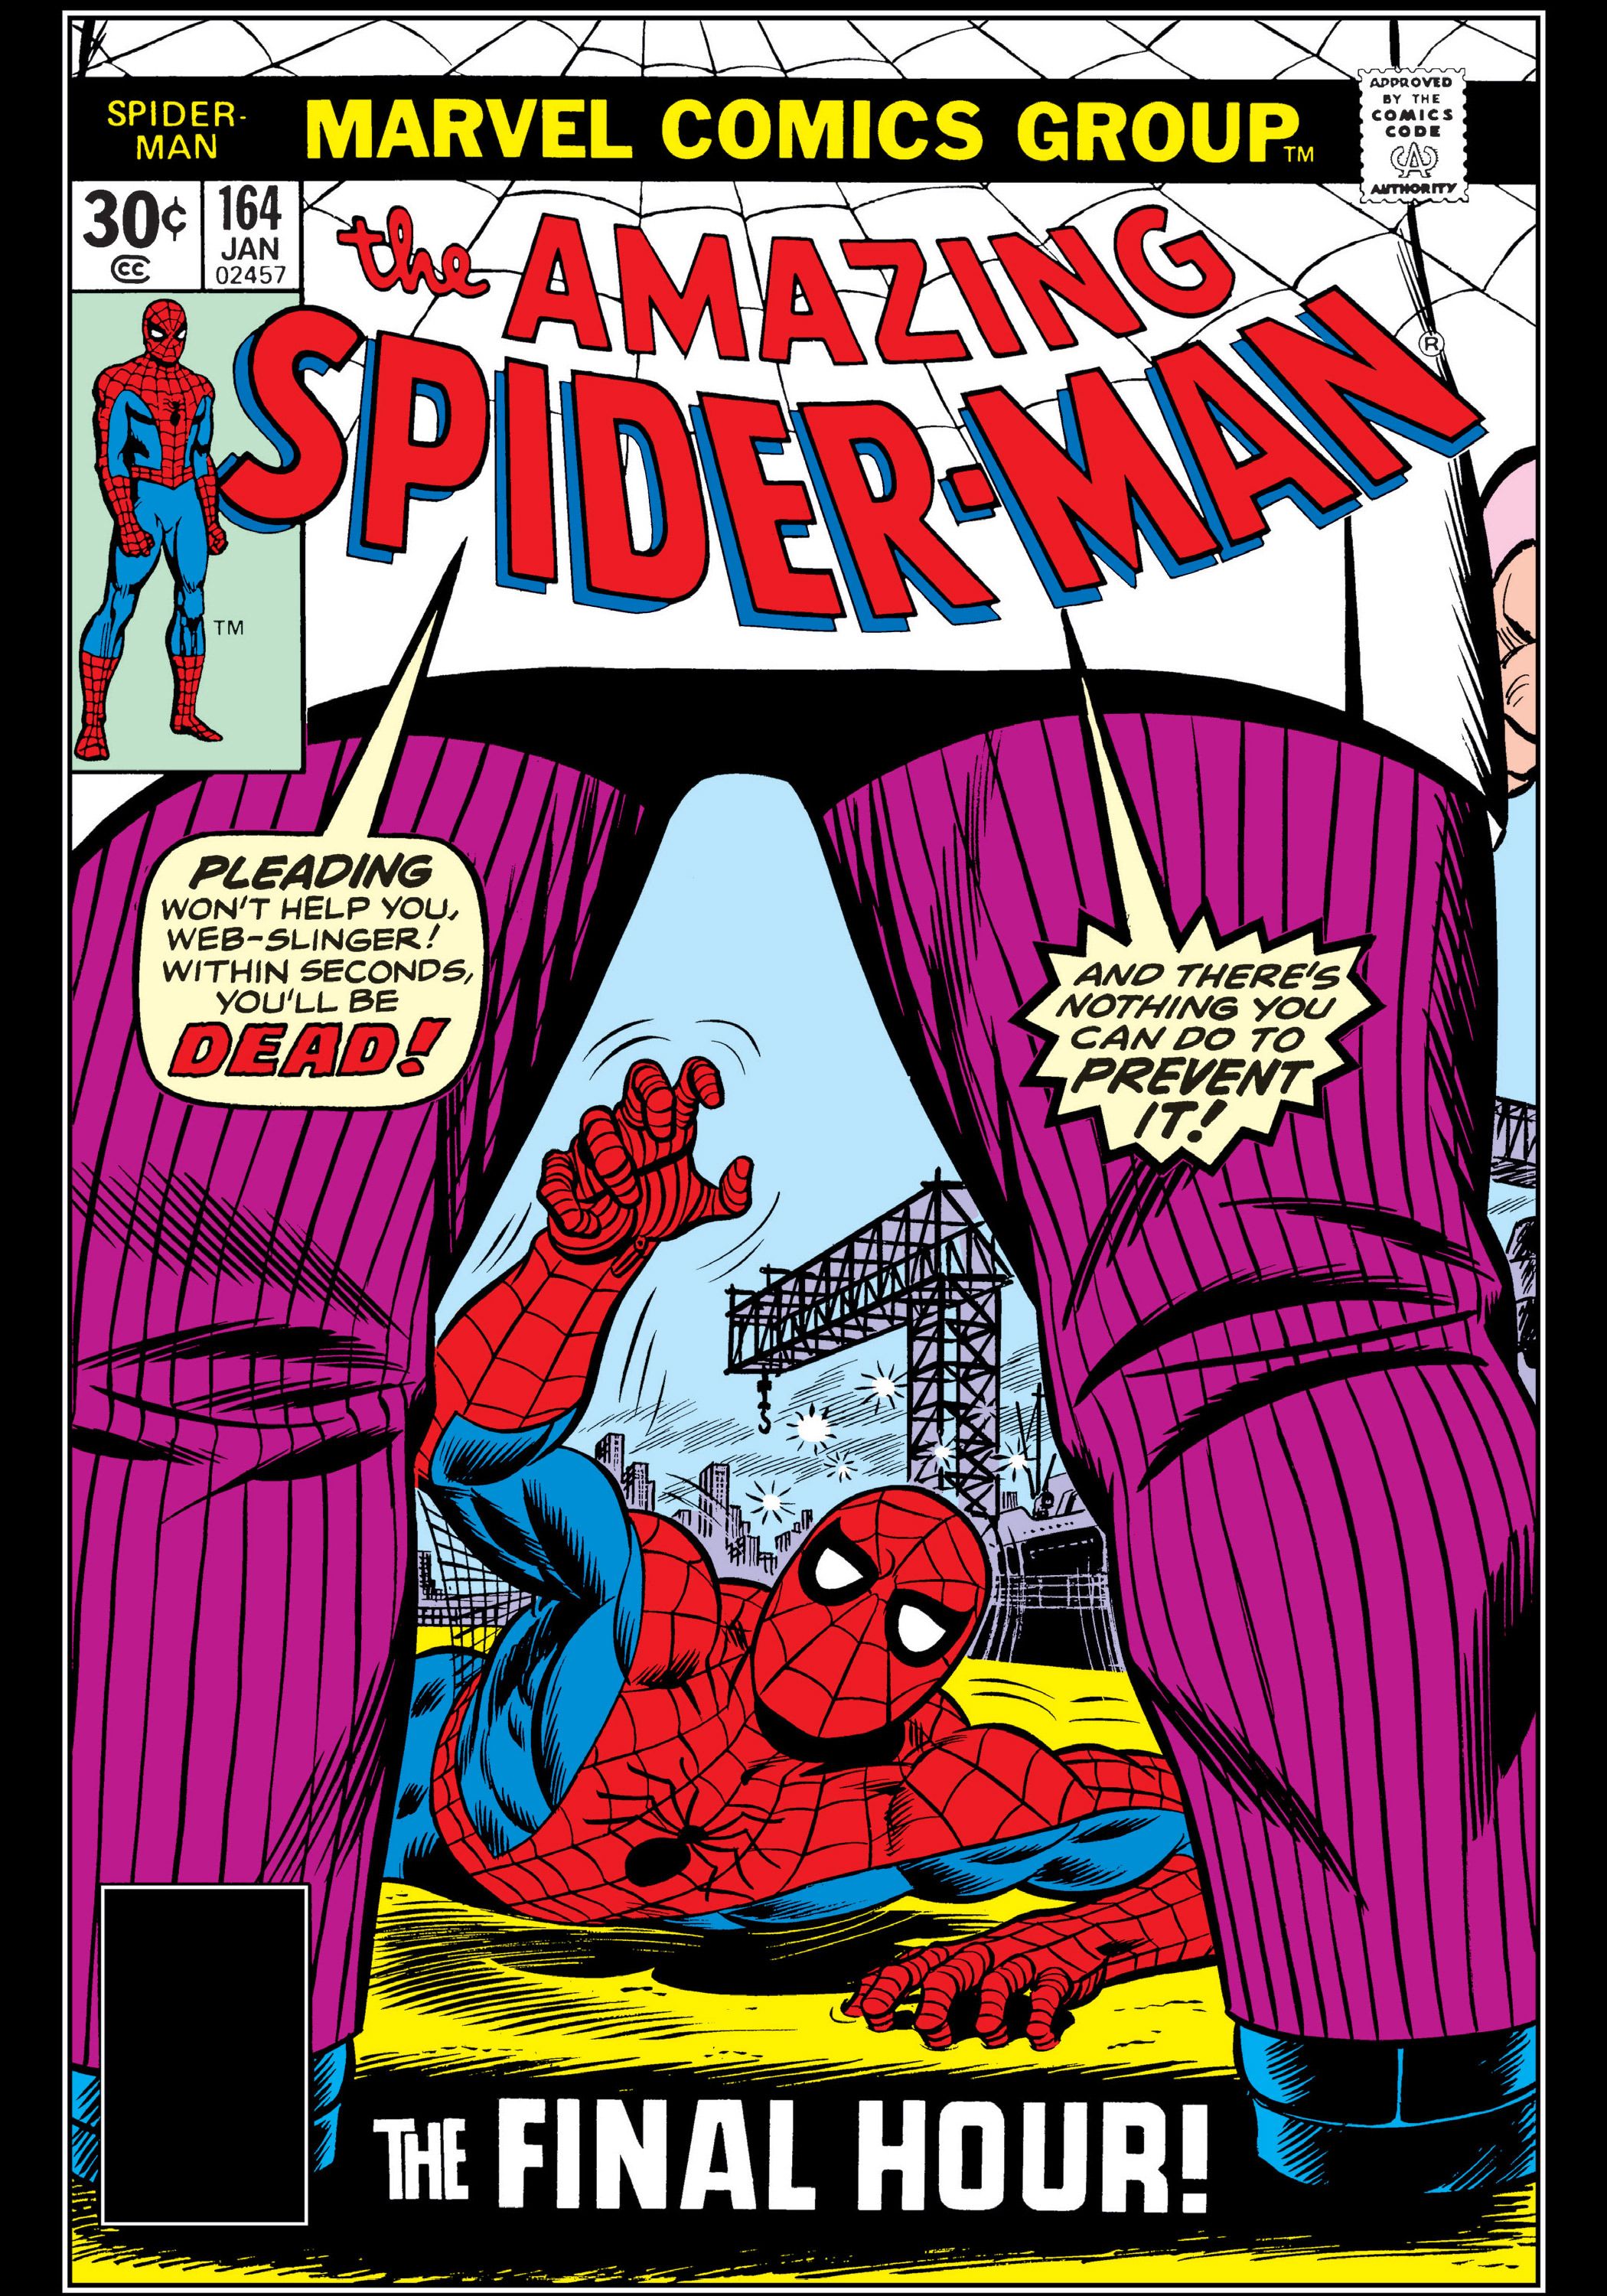 The Amazing Spider-Man (1963) 164 Page 1